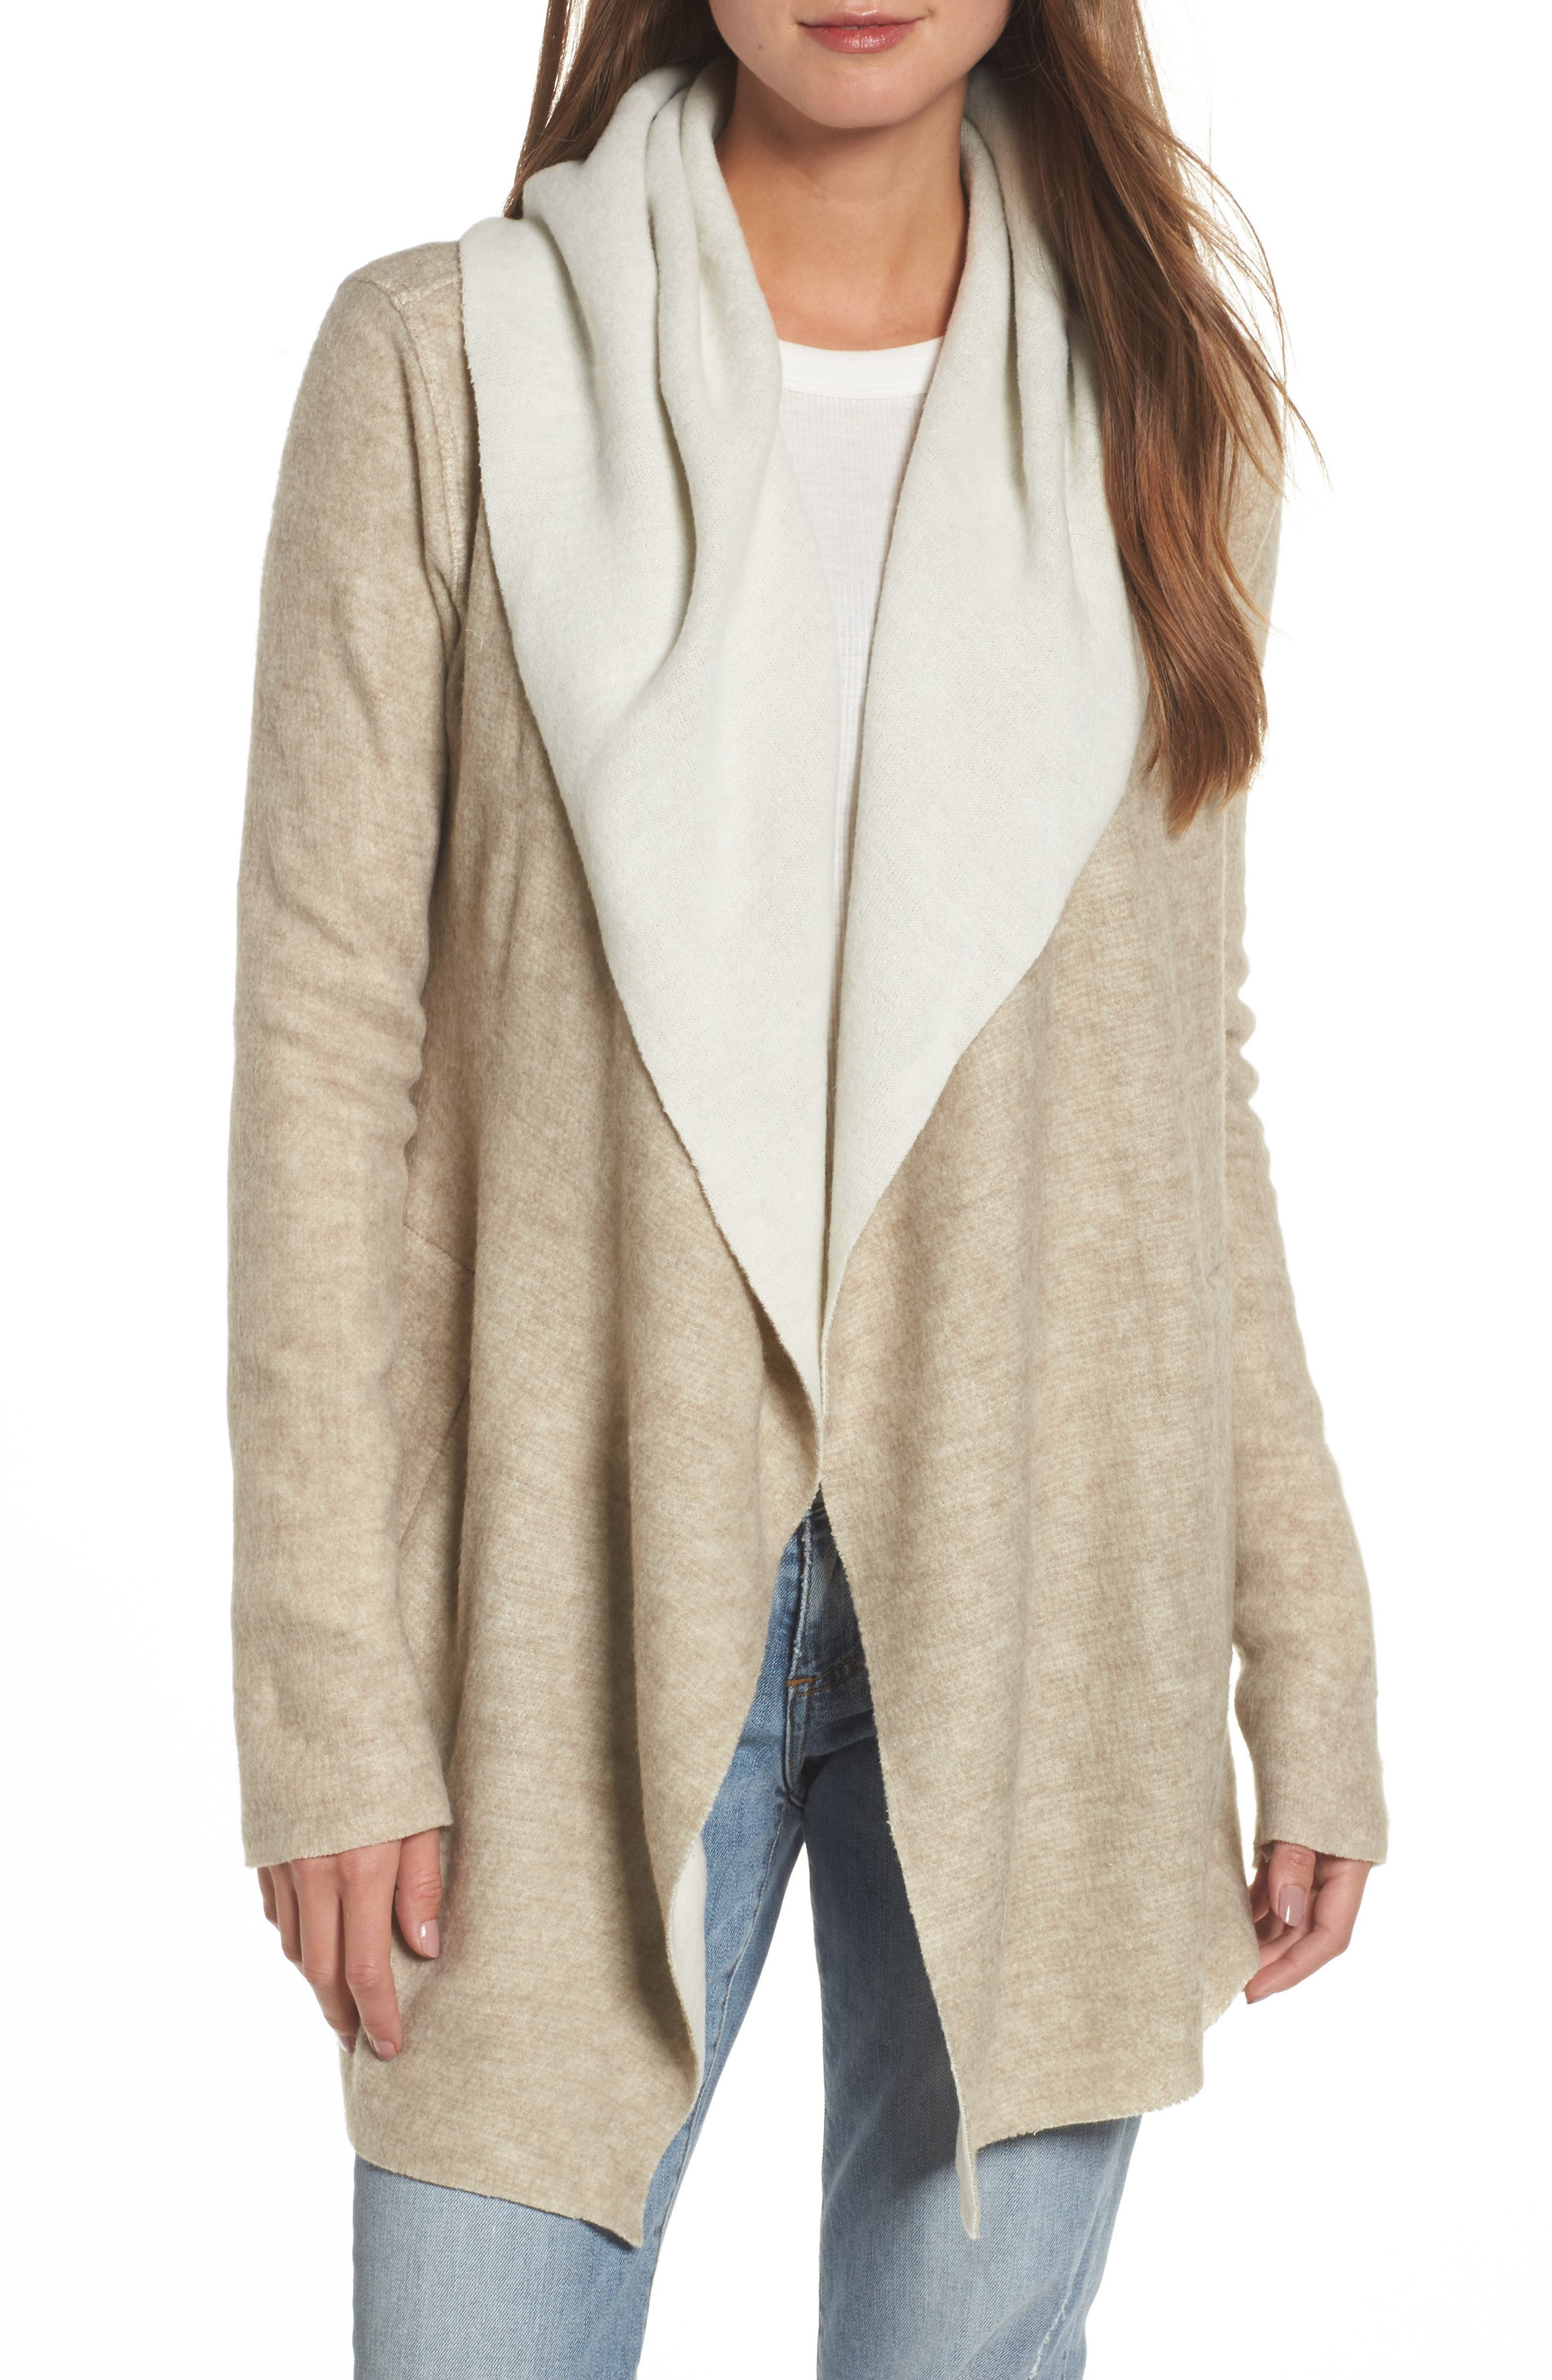 Dylan Hooded Sweater Cardigan